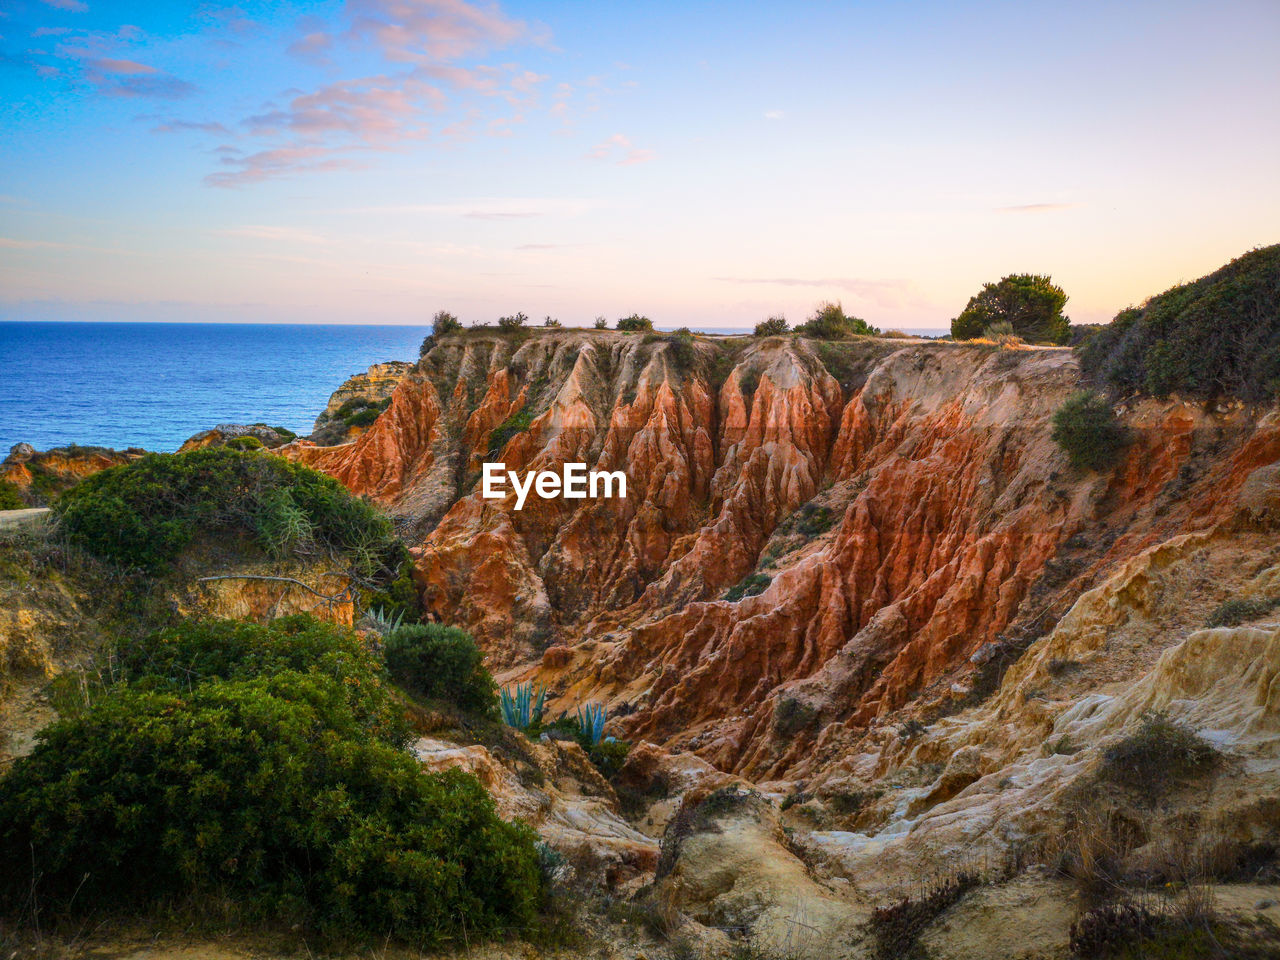 sky, scenics - nature, beauty in nature, sea, water, tranquil scene, horizon, tranquility, nature, land, rock, non-urban scene, no people, horizon over water, environment, plant, sunset, beach, rock - object, outdoors, eroded